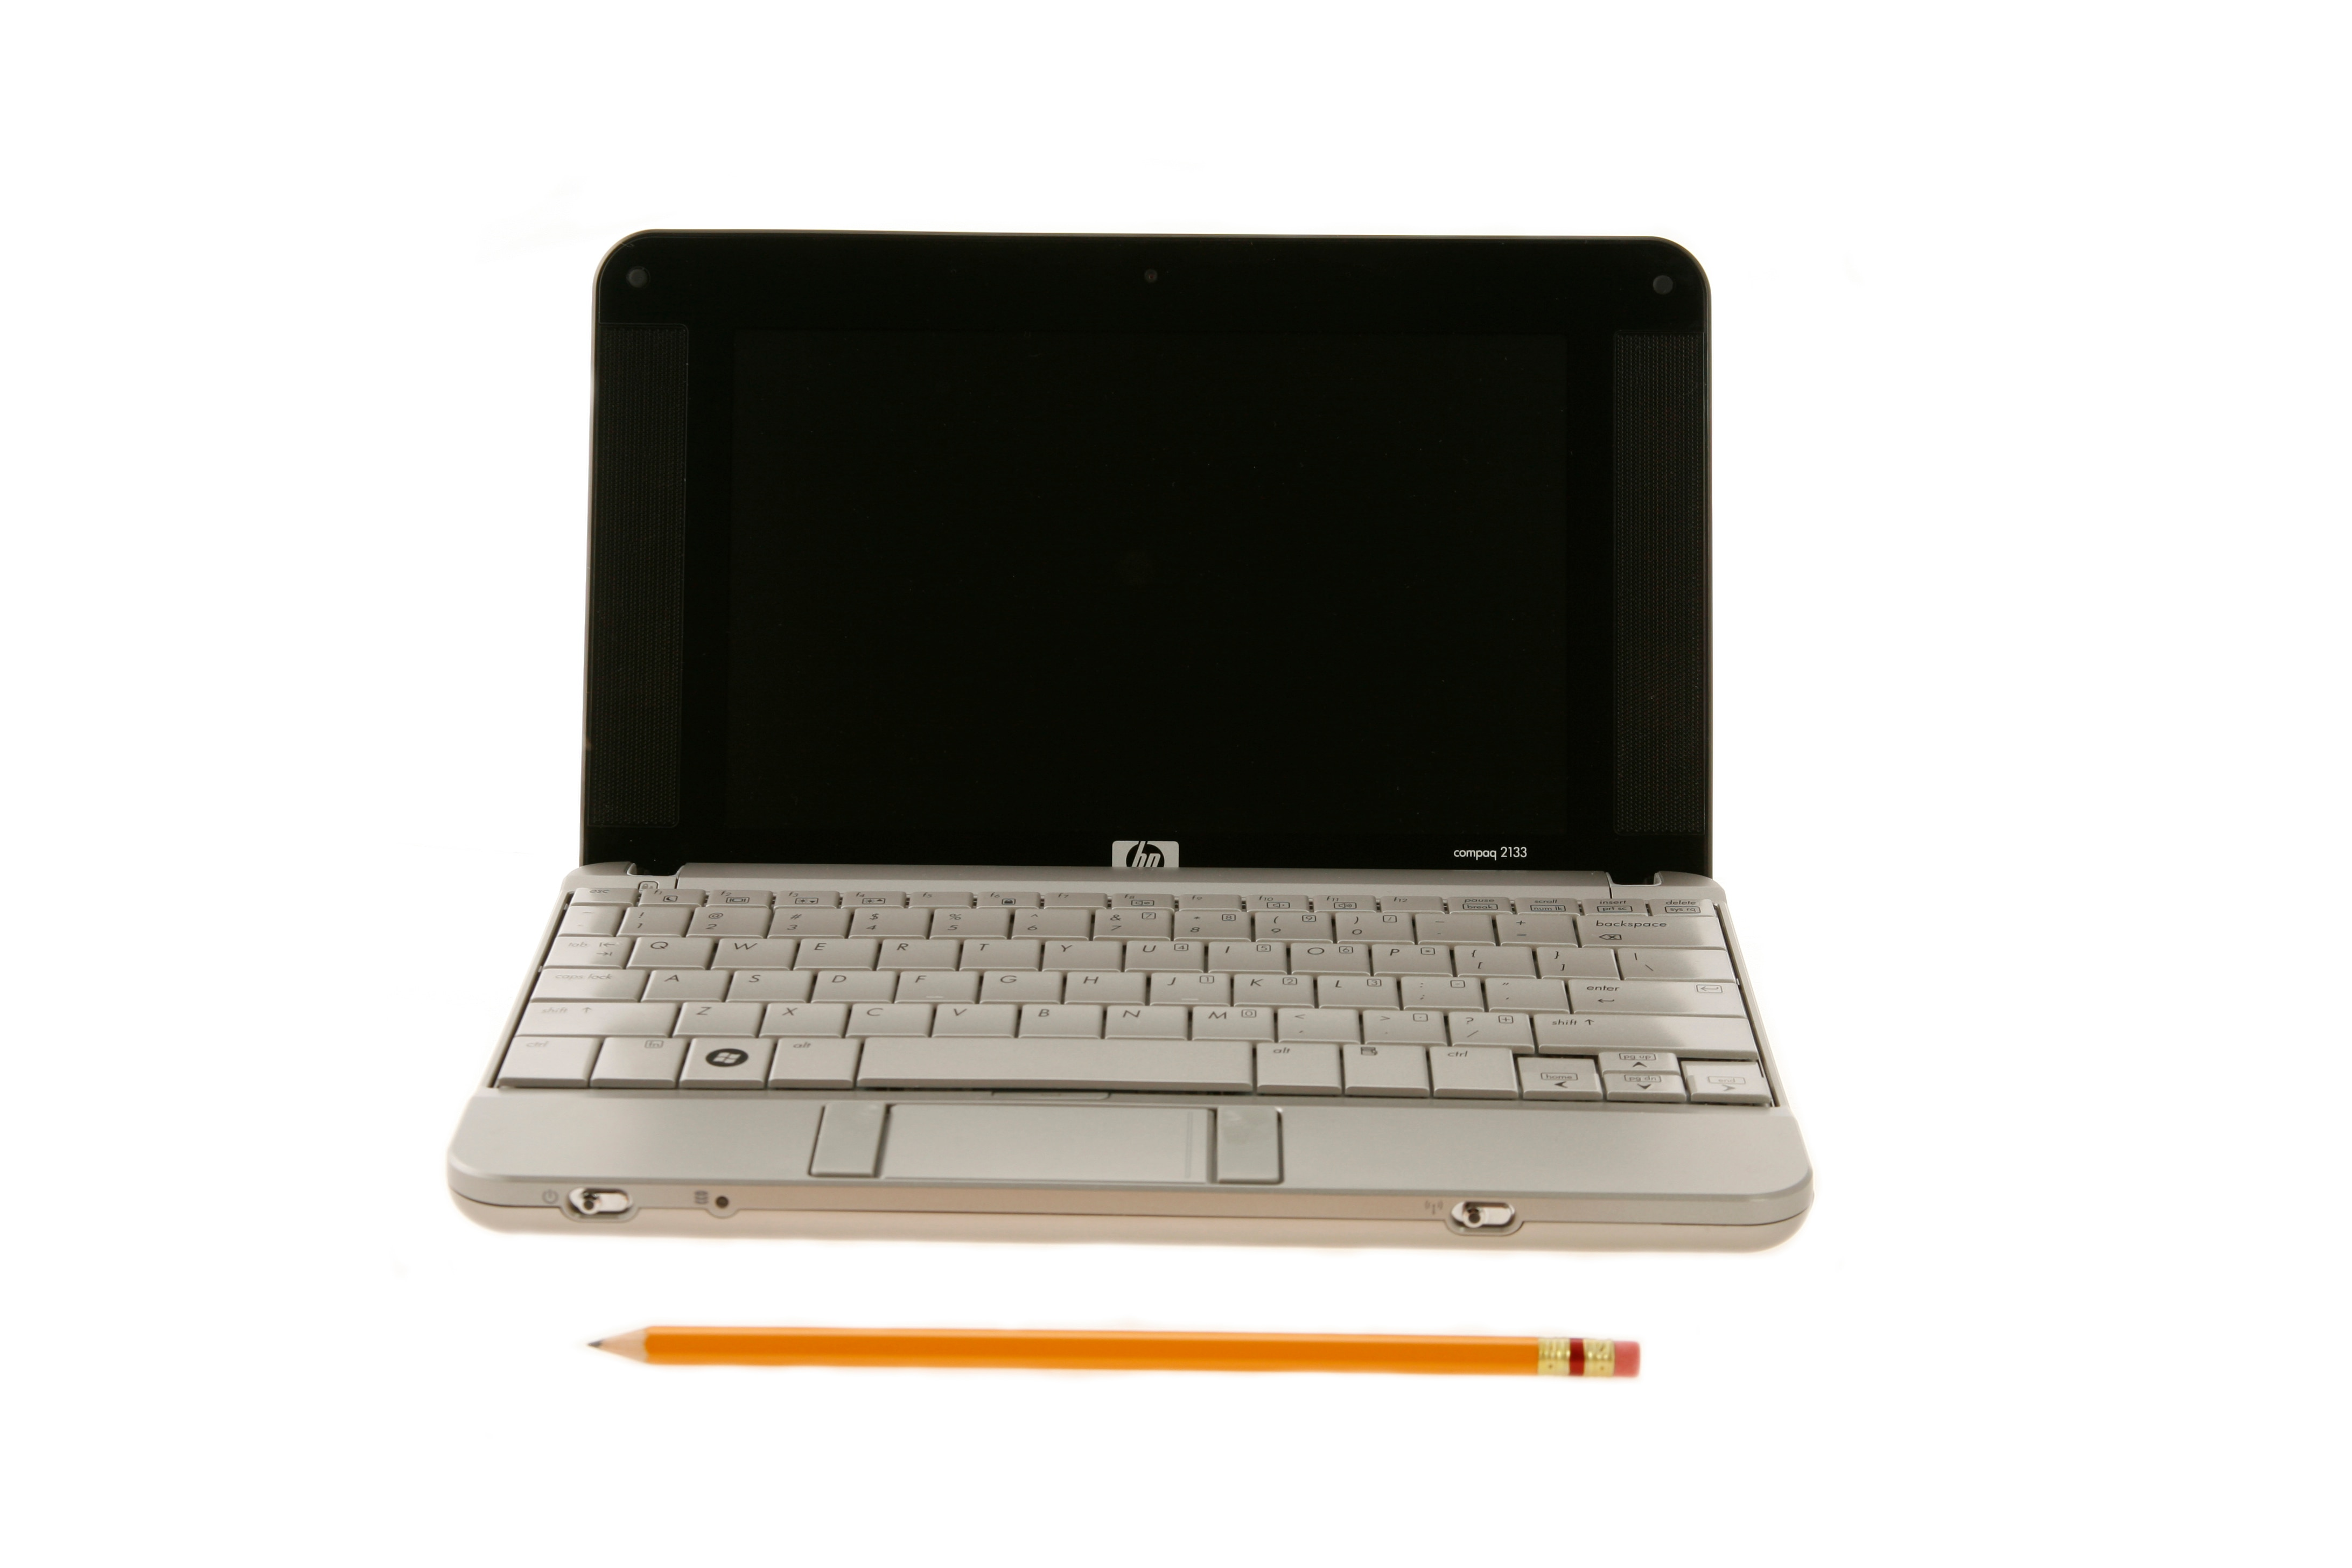 Image Front view of HP 2133 Mini Note PC